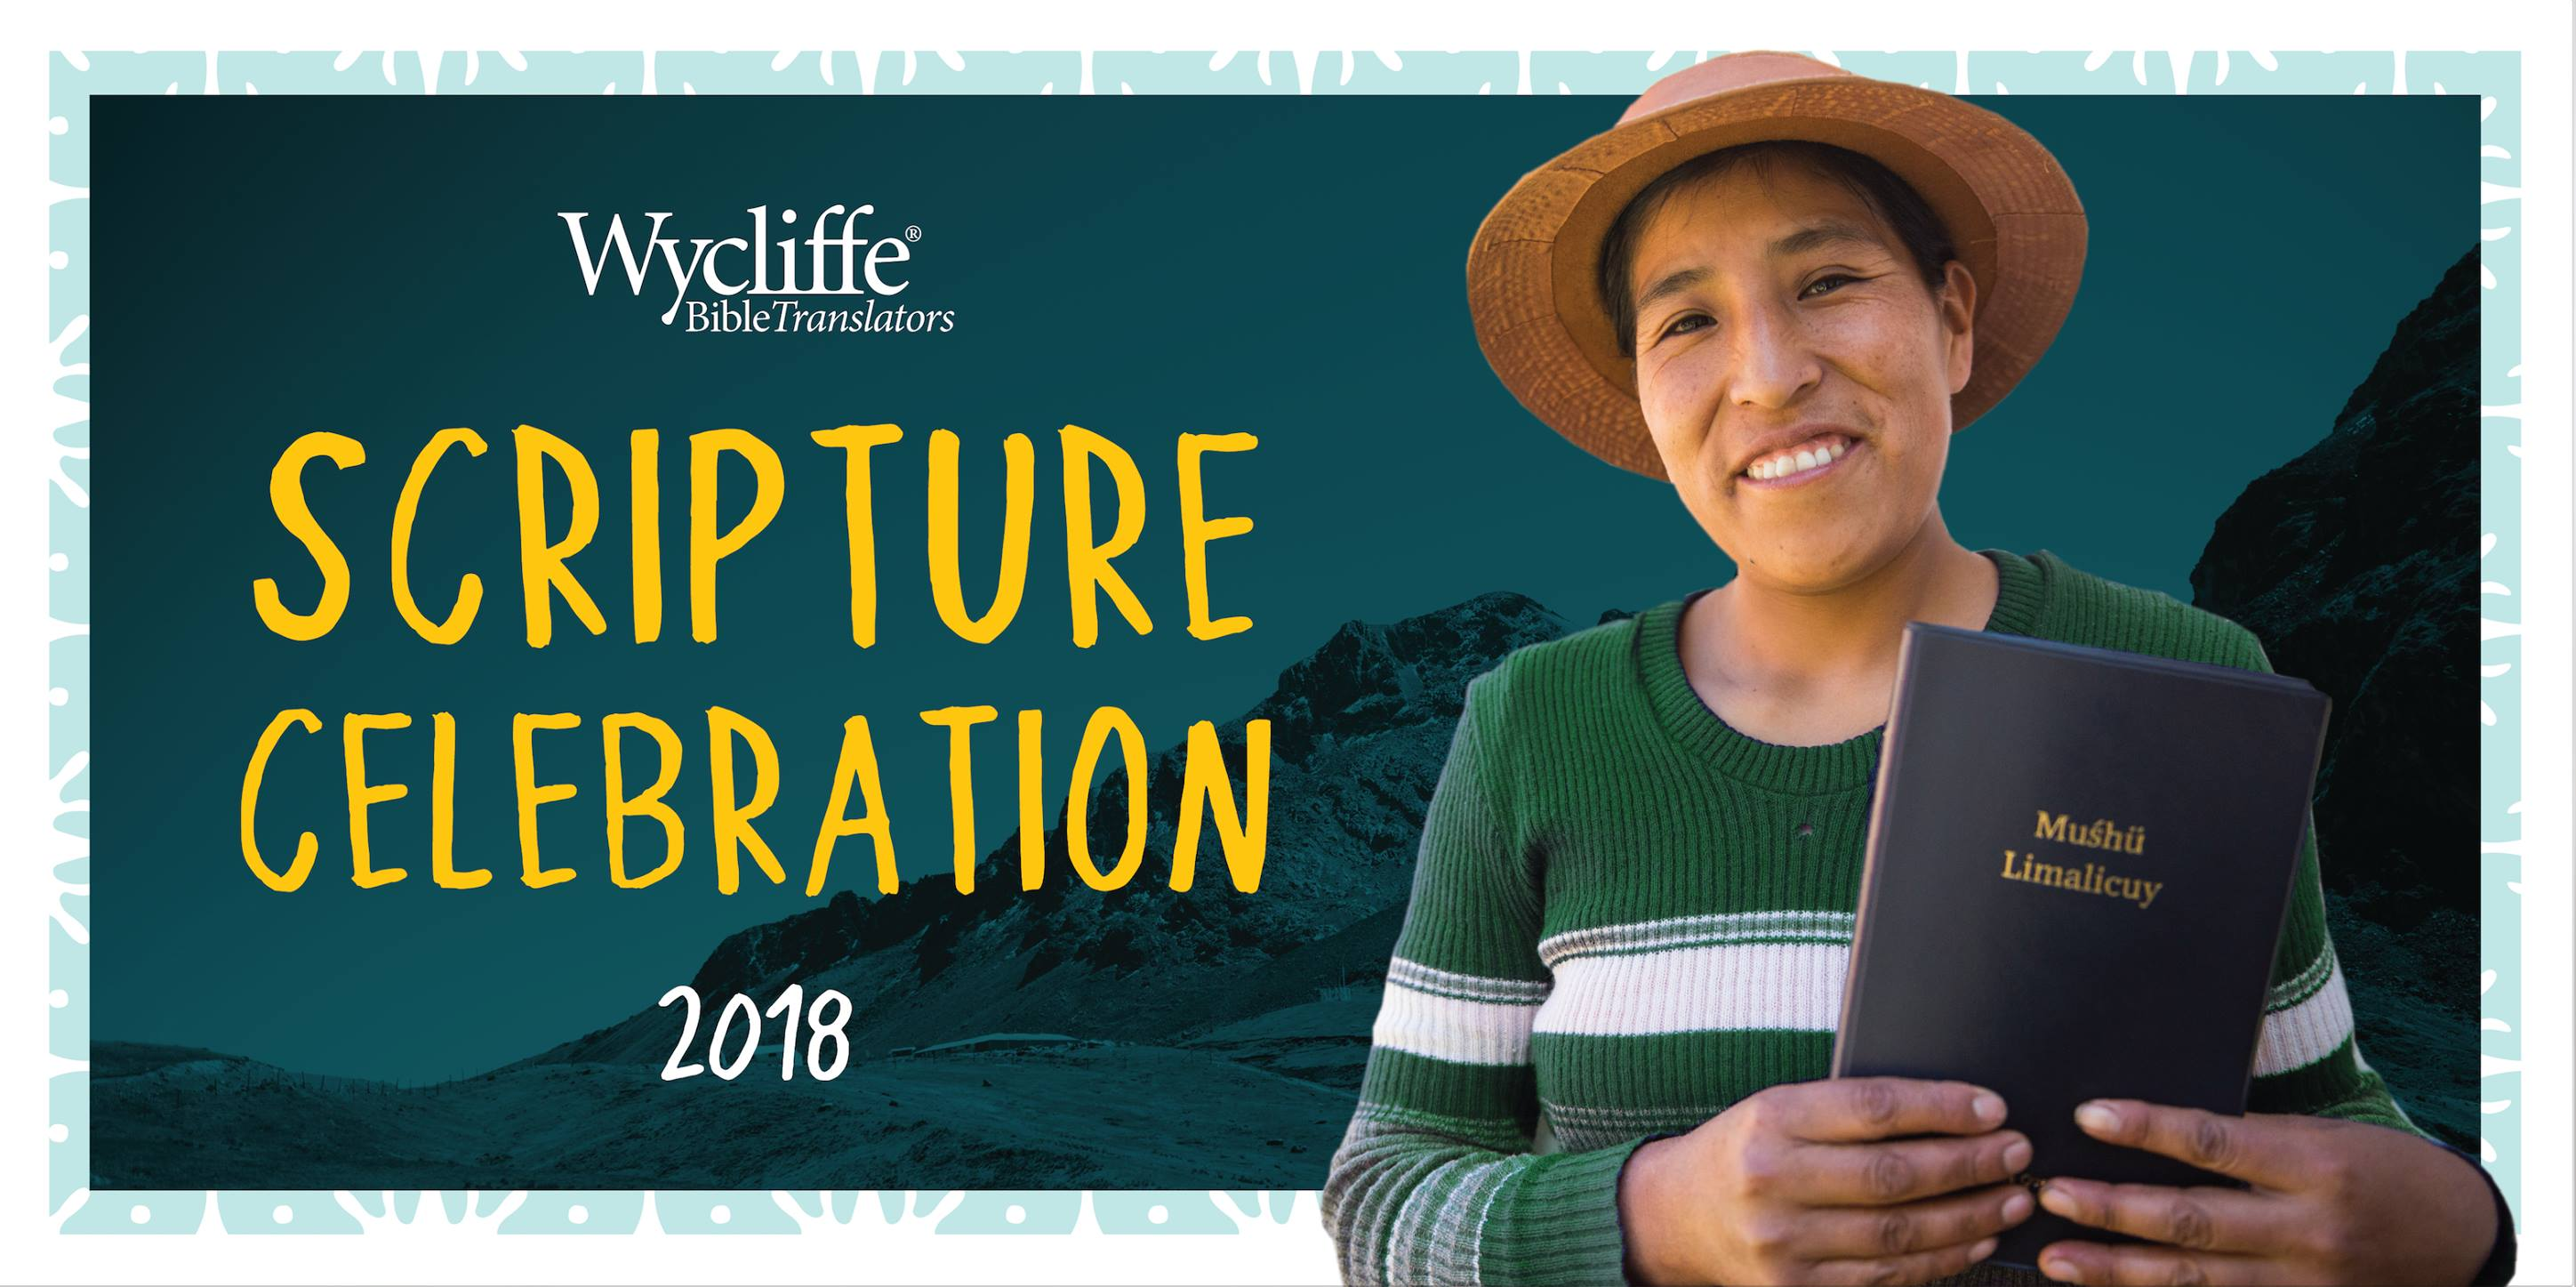 Wycliffe USA hosts Scripture Celebration in Orlando and online